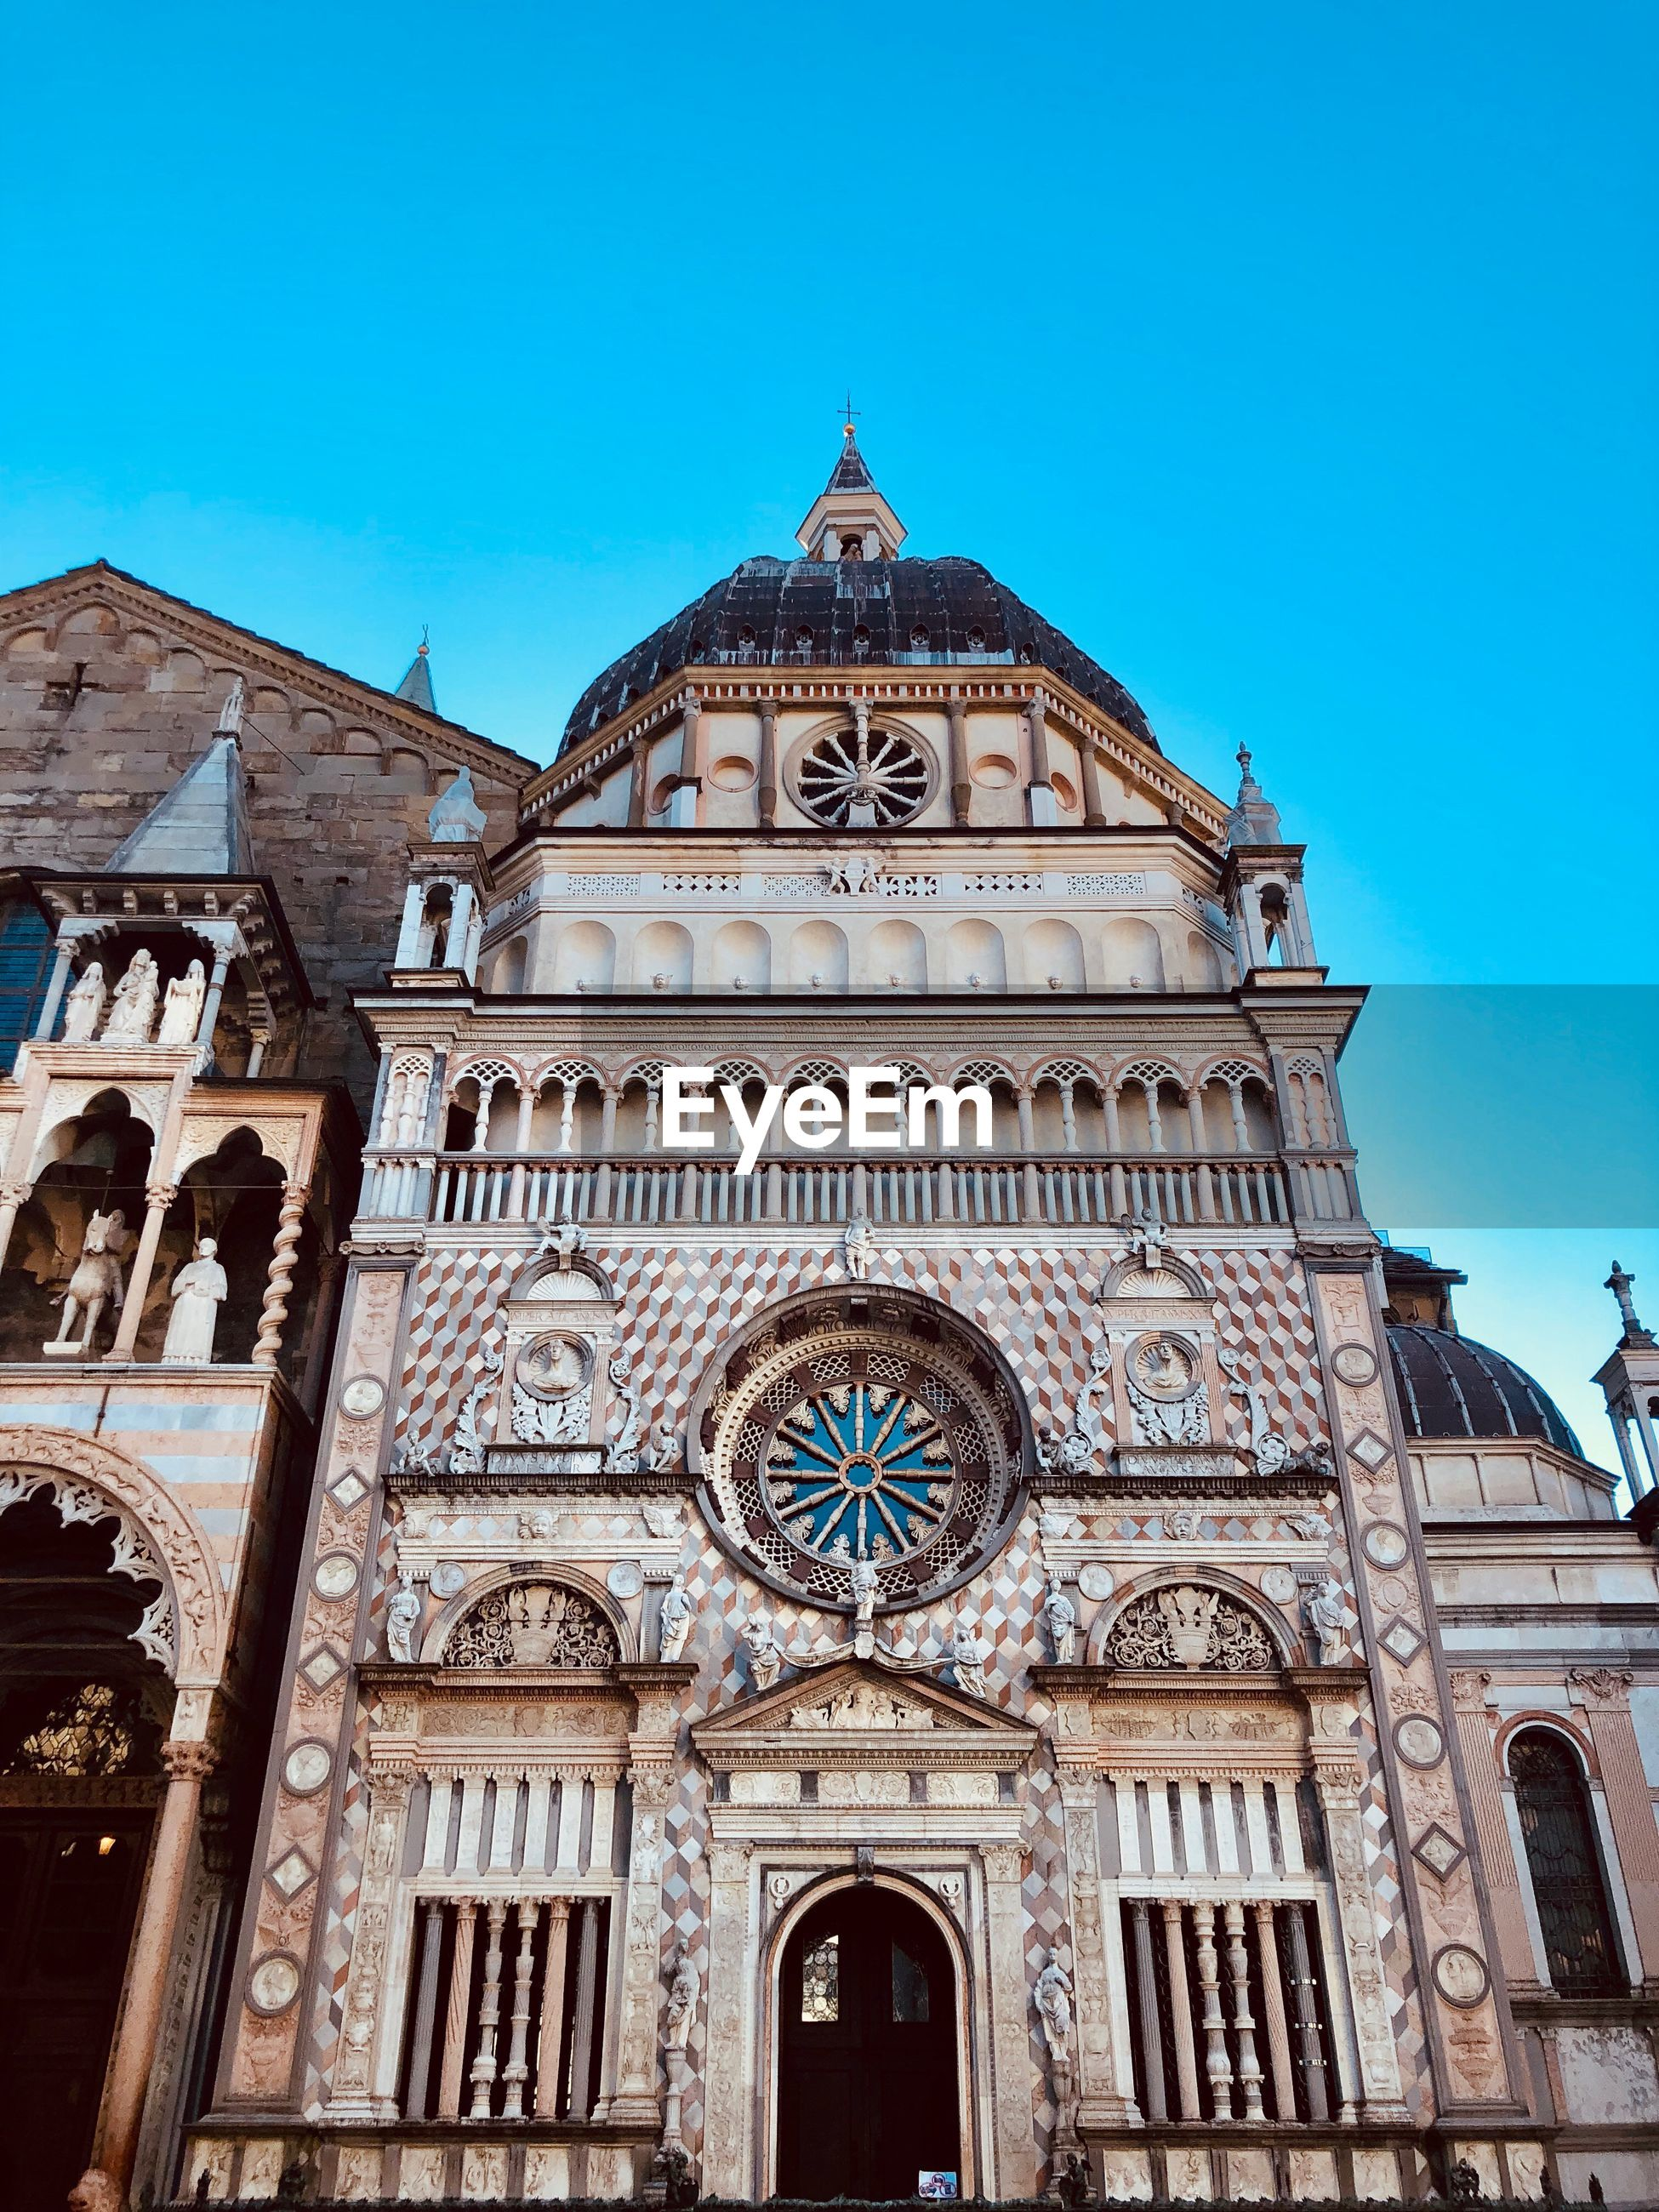 built structure, architecture, building exterior, sky, low angle view, building, place of worship, religion, blue, belief, spirituality, travel destinations, no people, nature, day, history, facade, clock, ornate